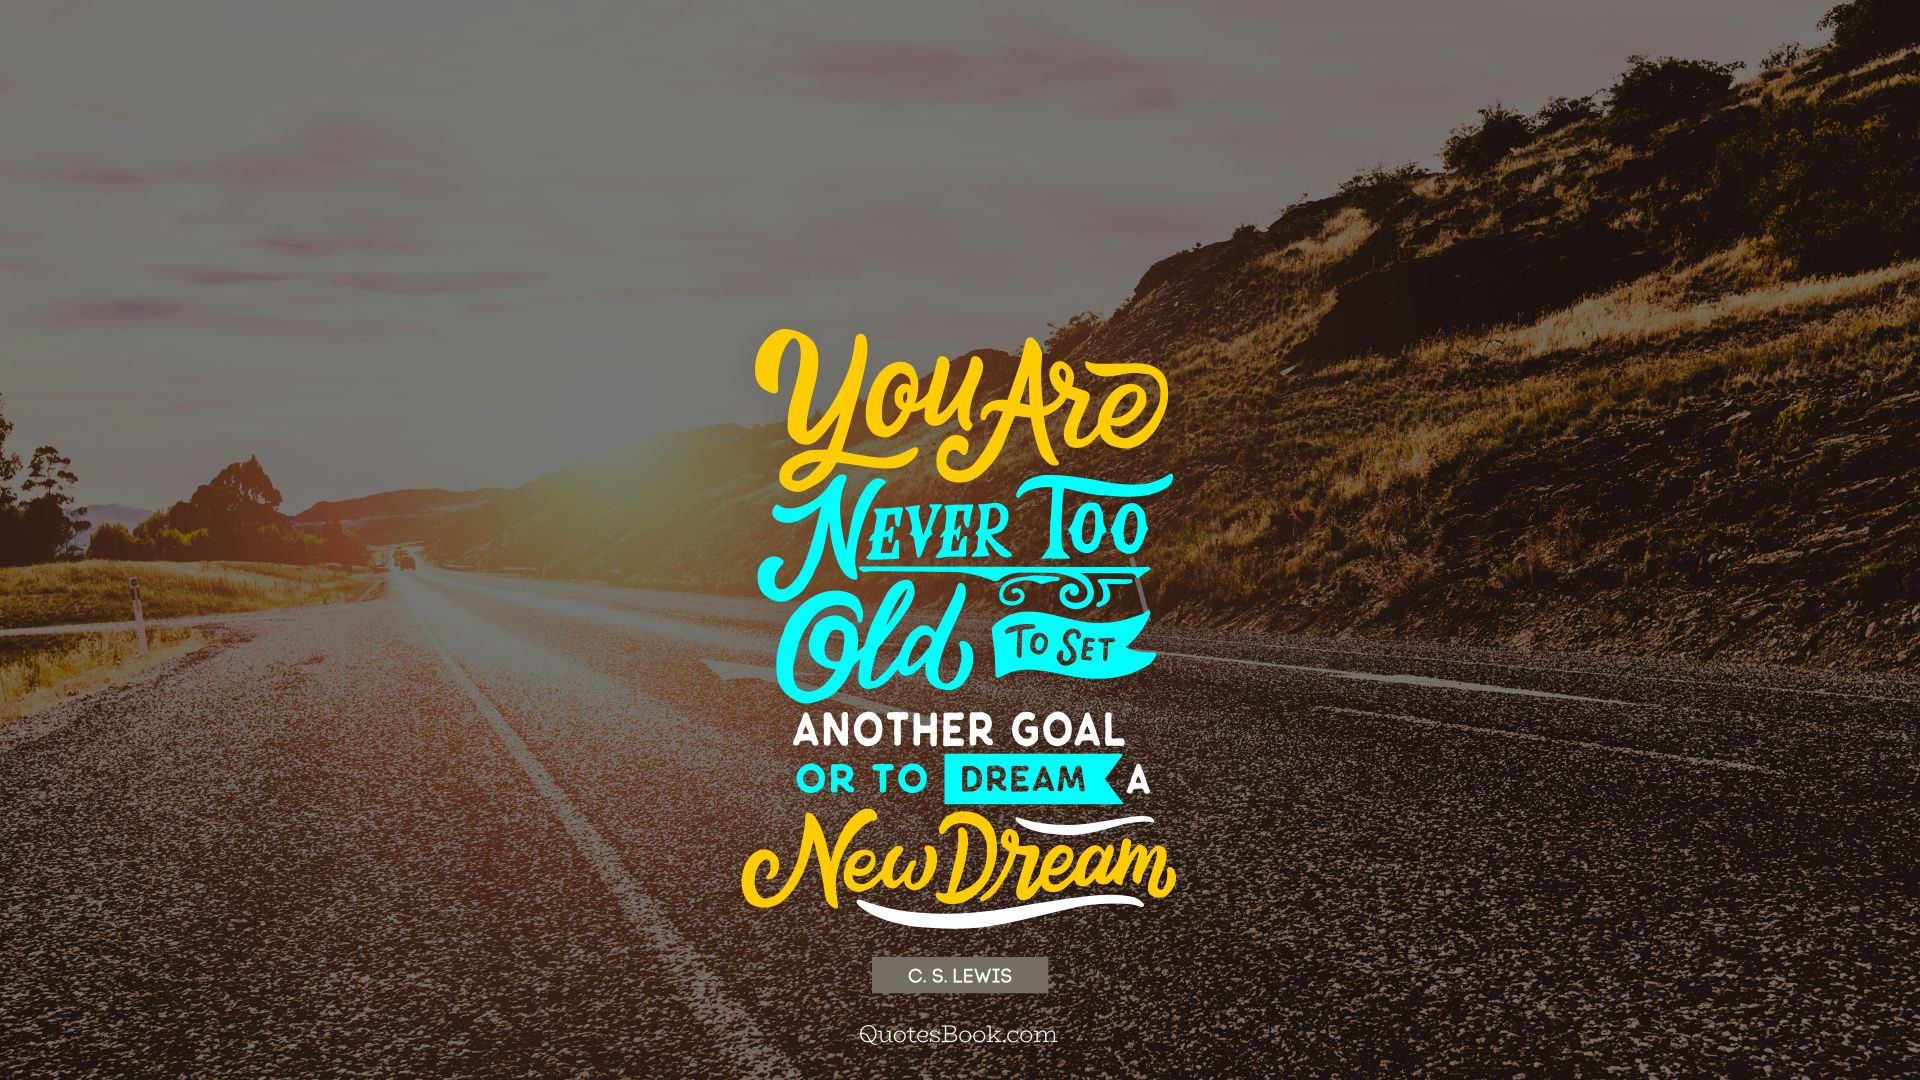 You are never too old to set another goal or to dream a new dream. - Quote by C. S. Lewis